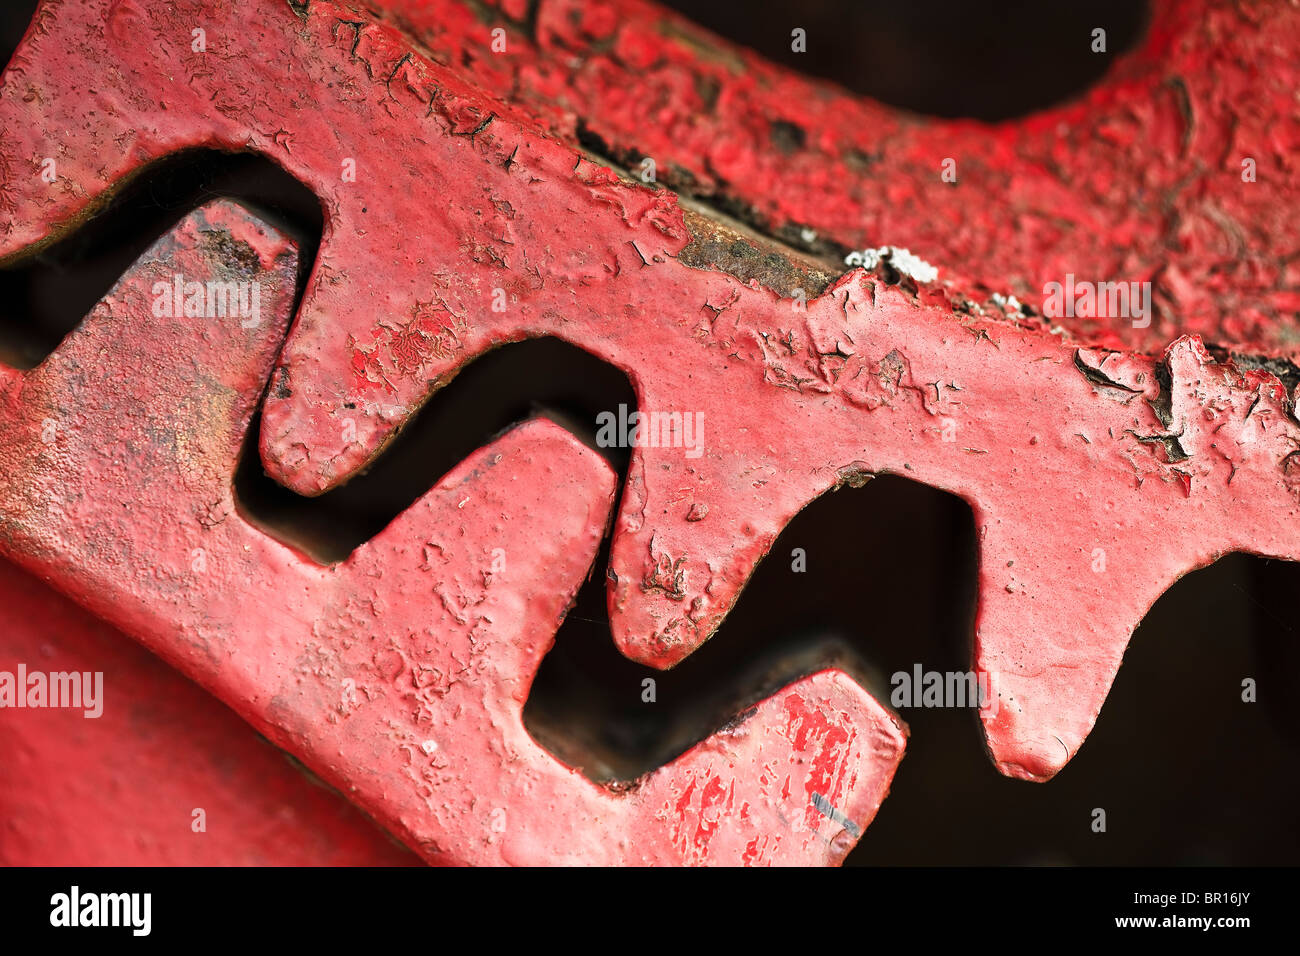 Gears from an antique threshing machine, close up view. - Stock Image